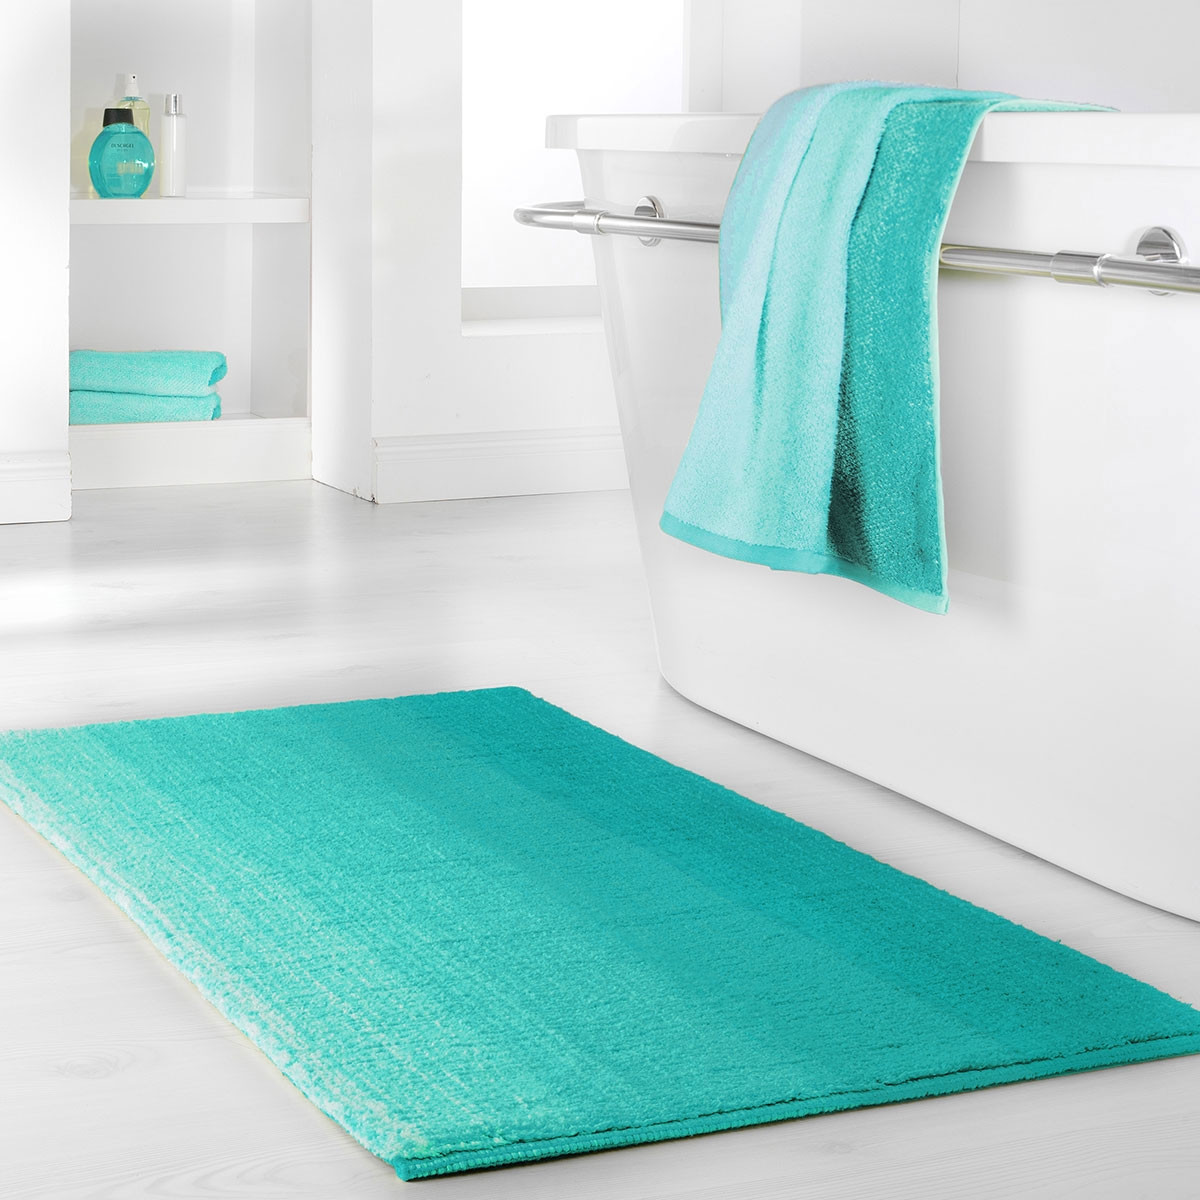 Dyckhoff Colori Bath Mat 100% Organic Cotton Aqua Blue